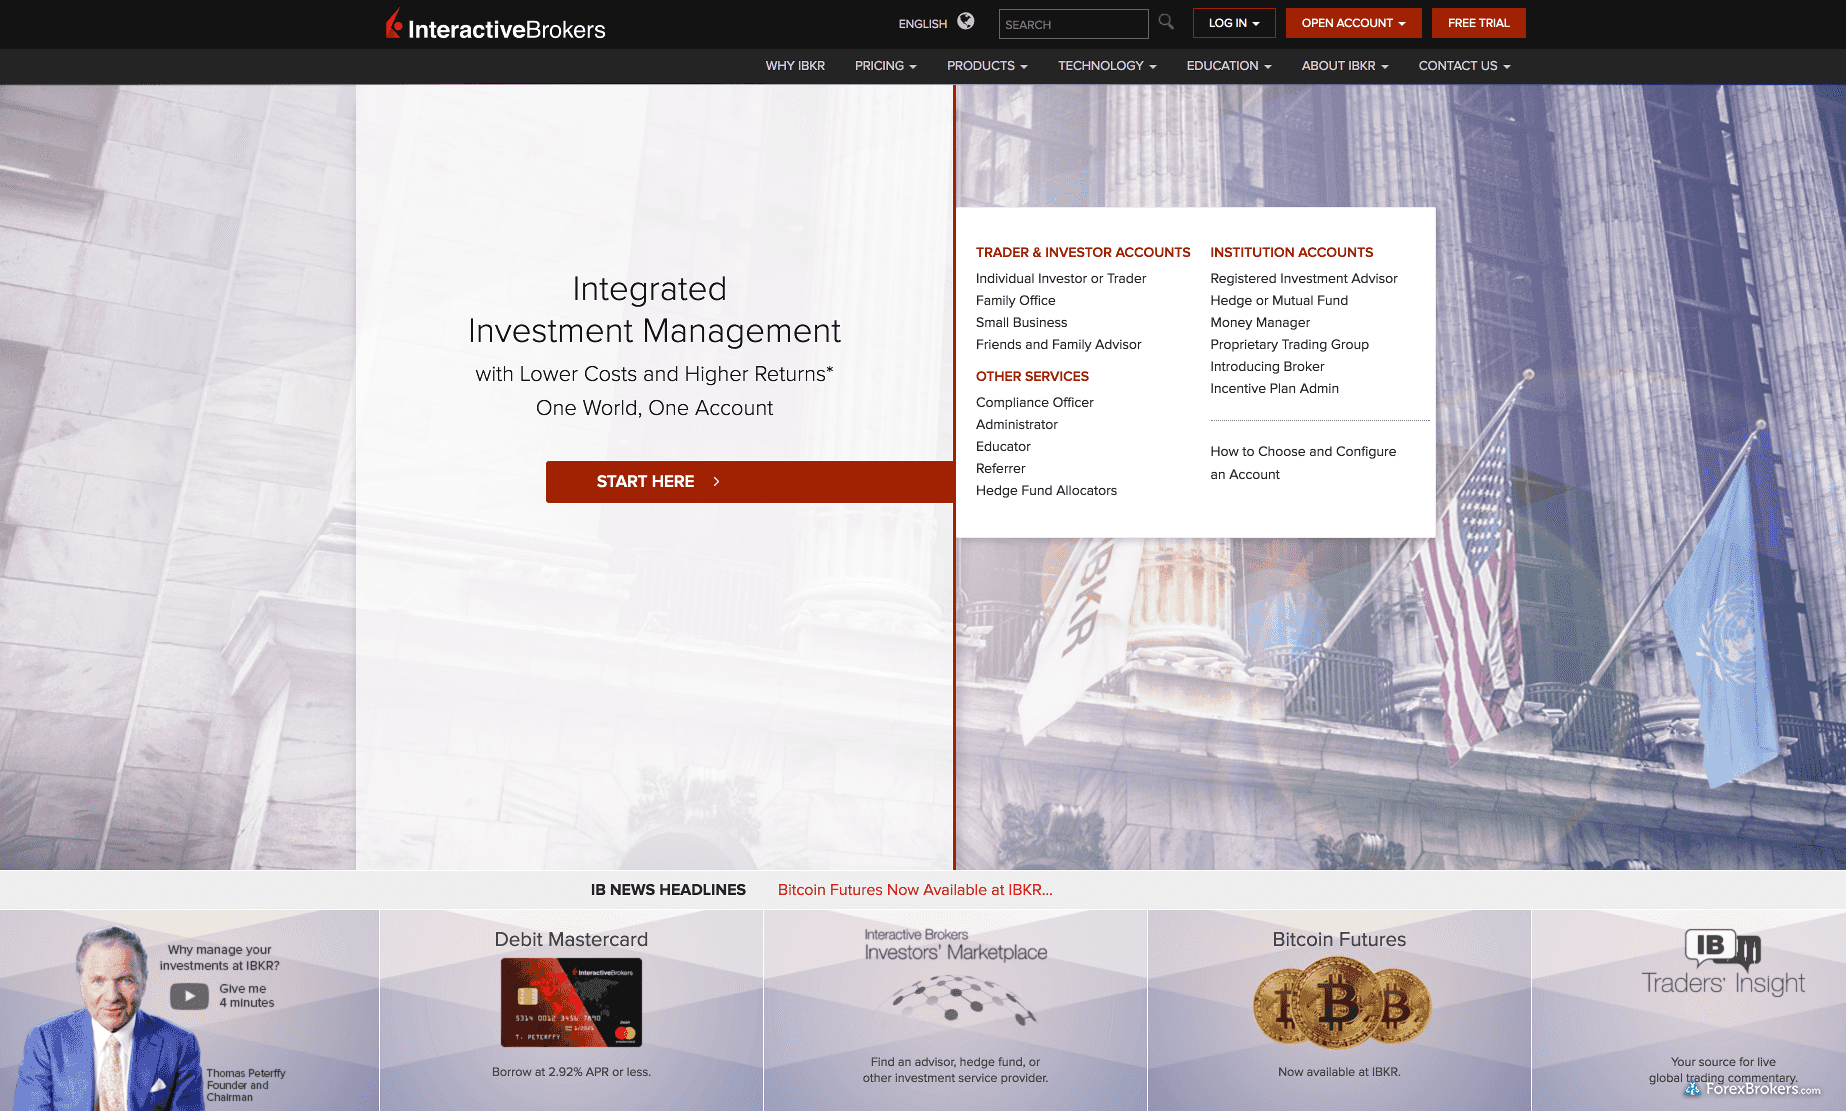 Interactive Brokers Homepage